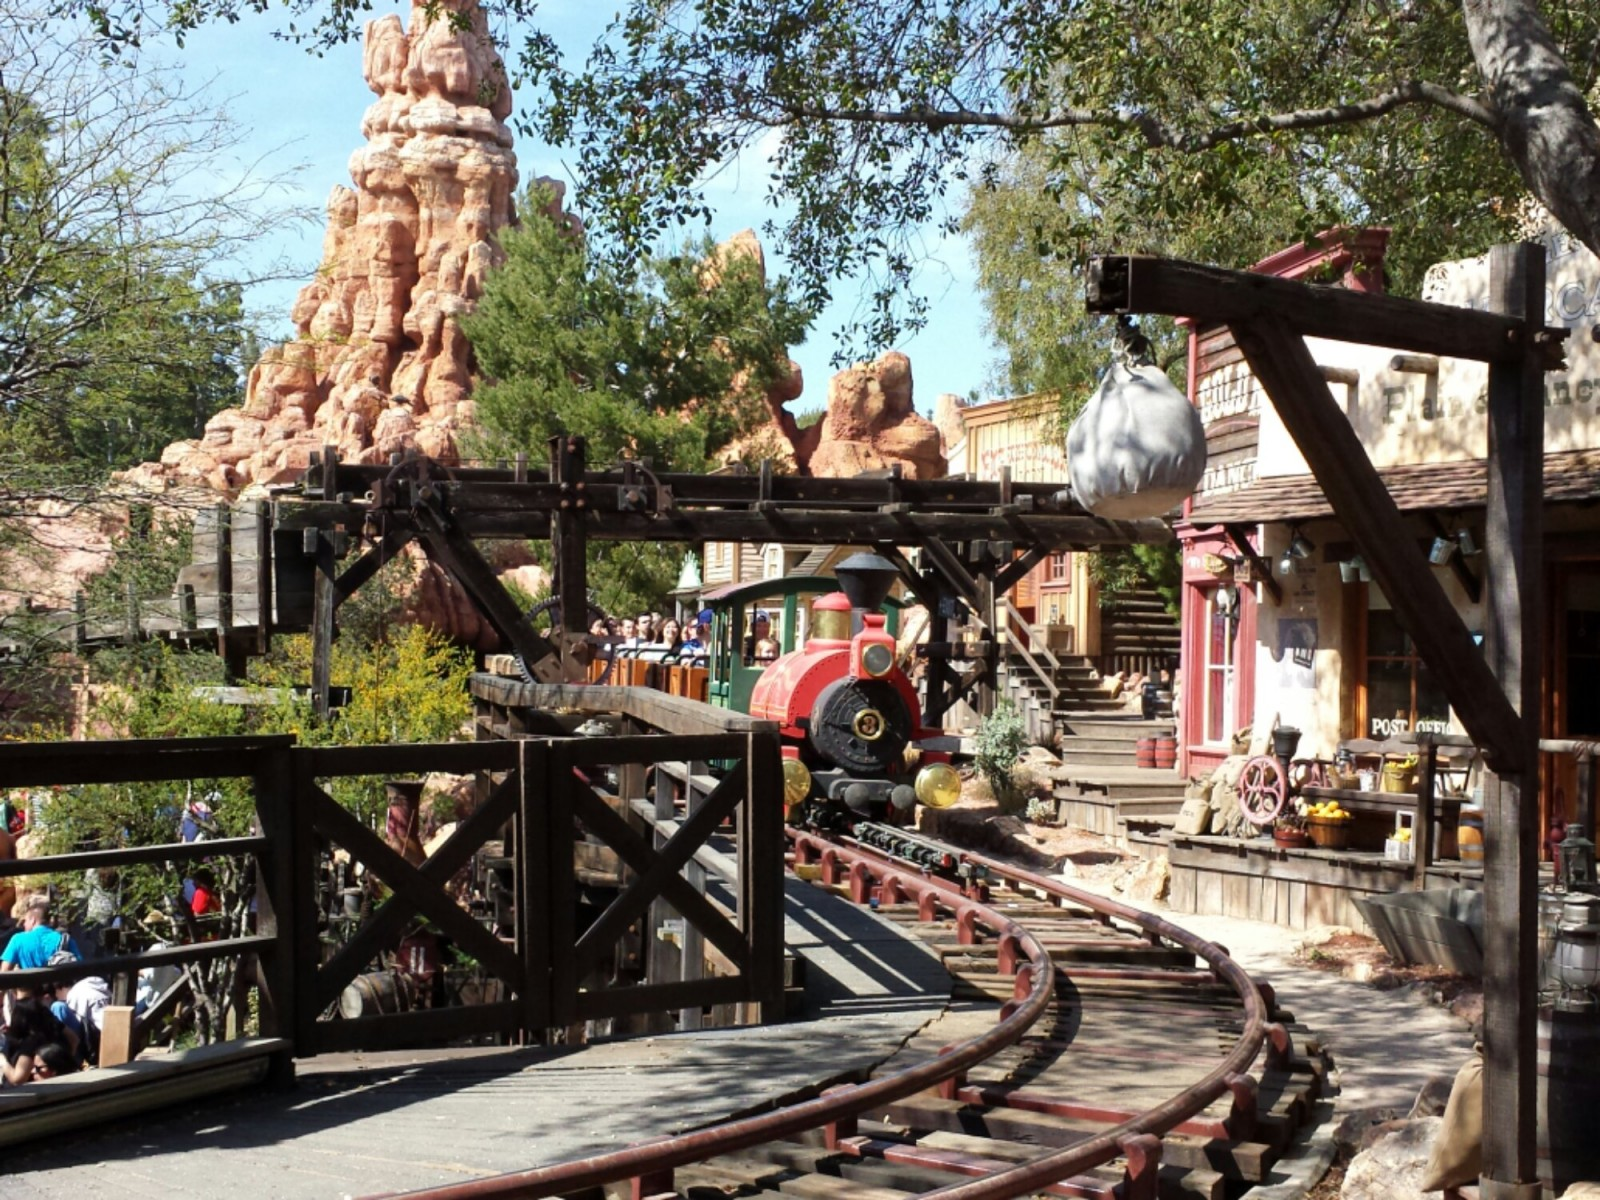 A Big Thunder train returning from its adventure